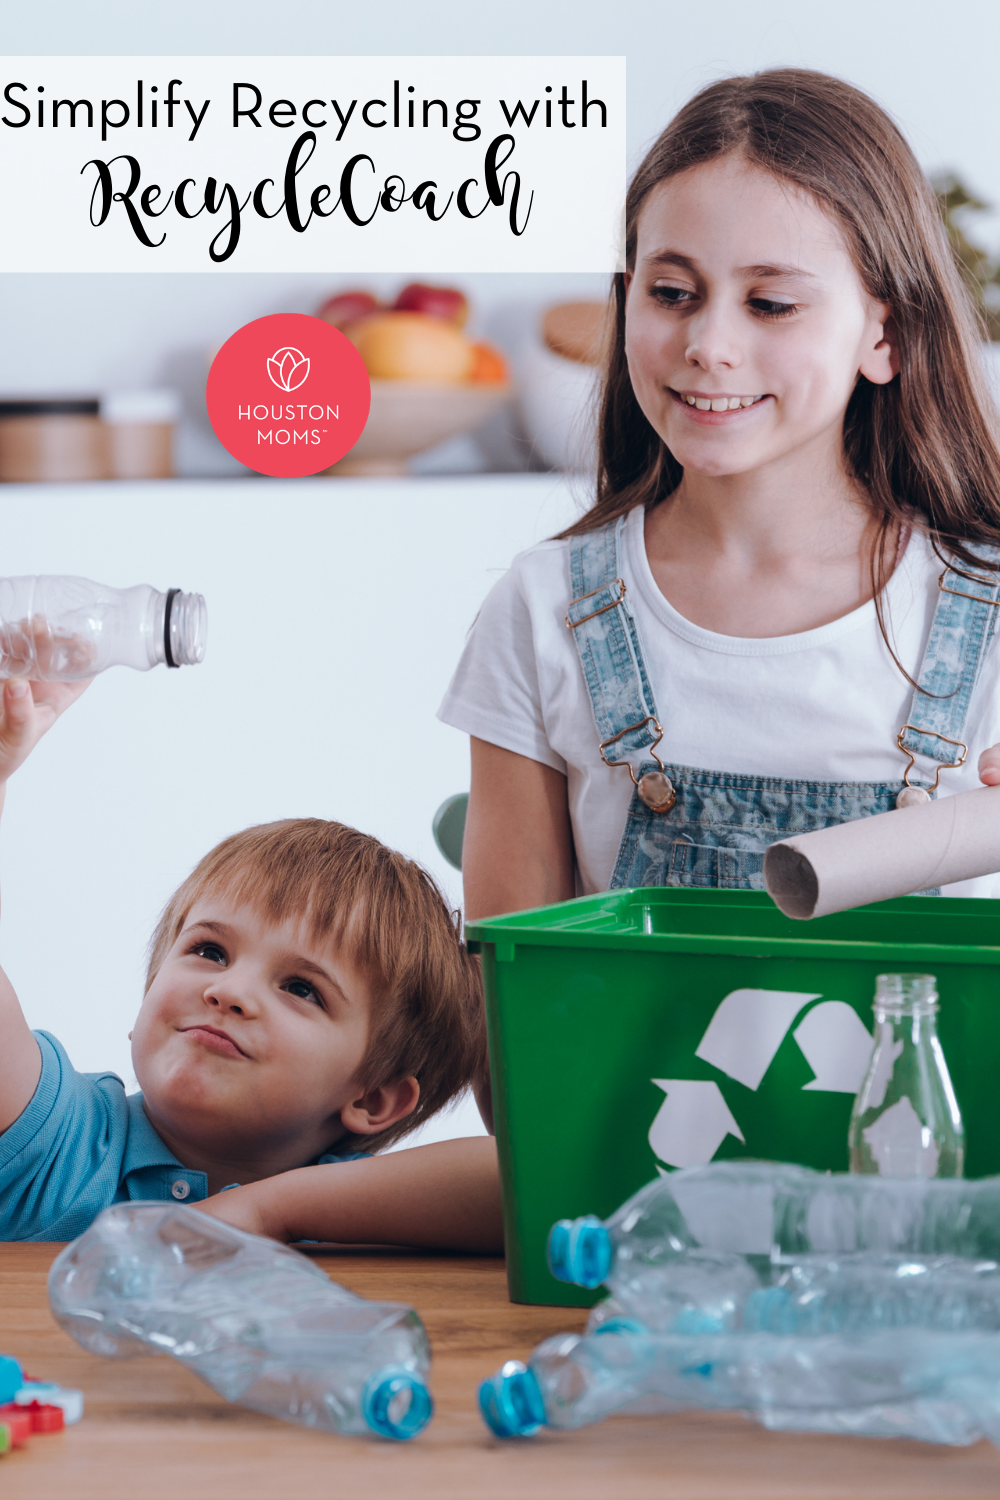 "Houston Moms ""Simplify Recycling with RecycleCoach"" #houstonmoms #houstonmomsblog #momsaroundhouston"